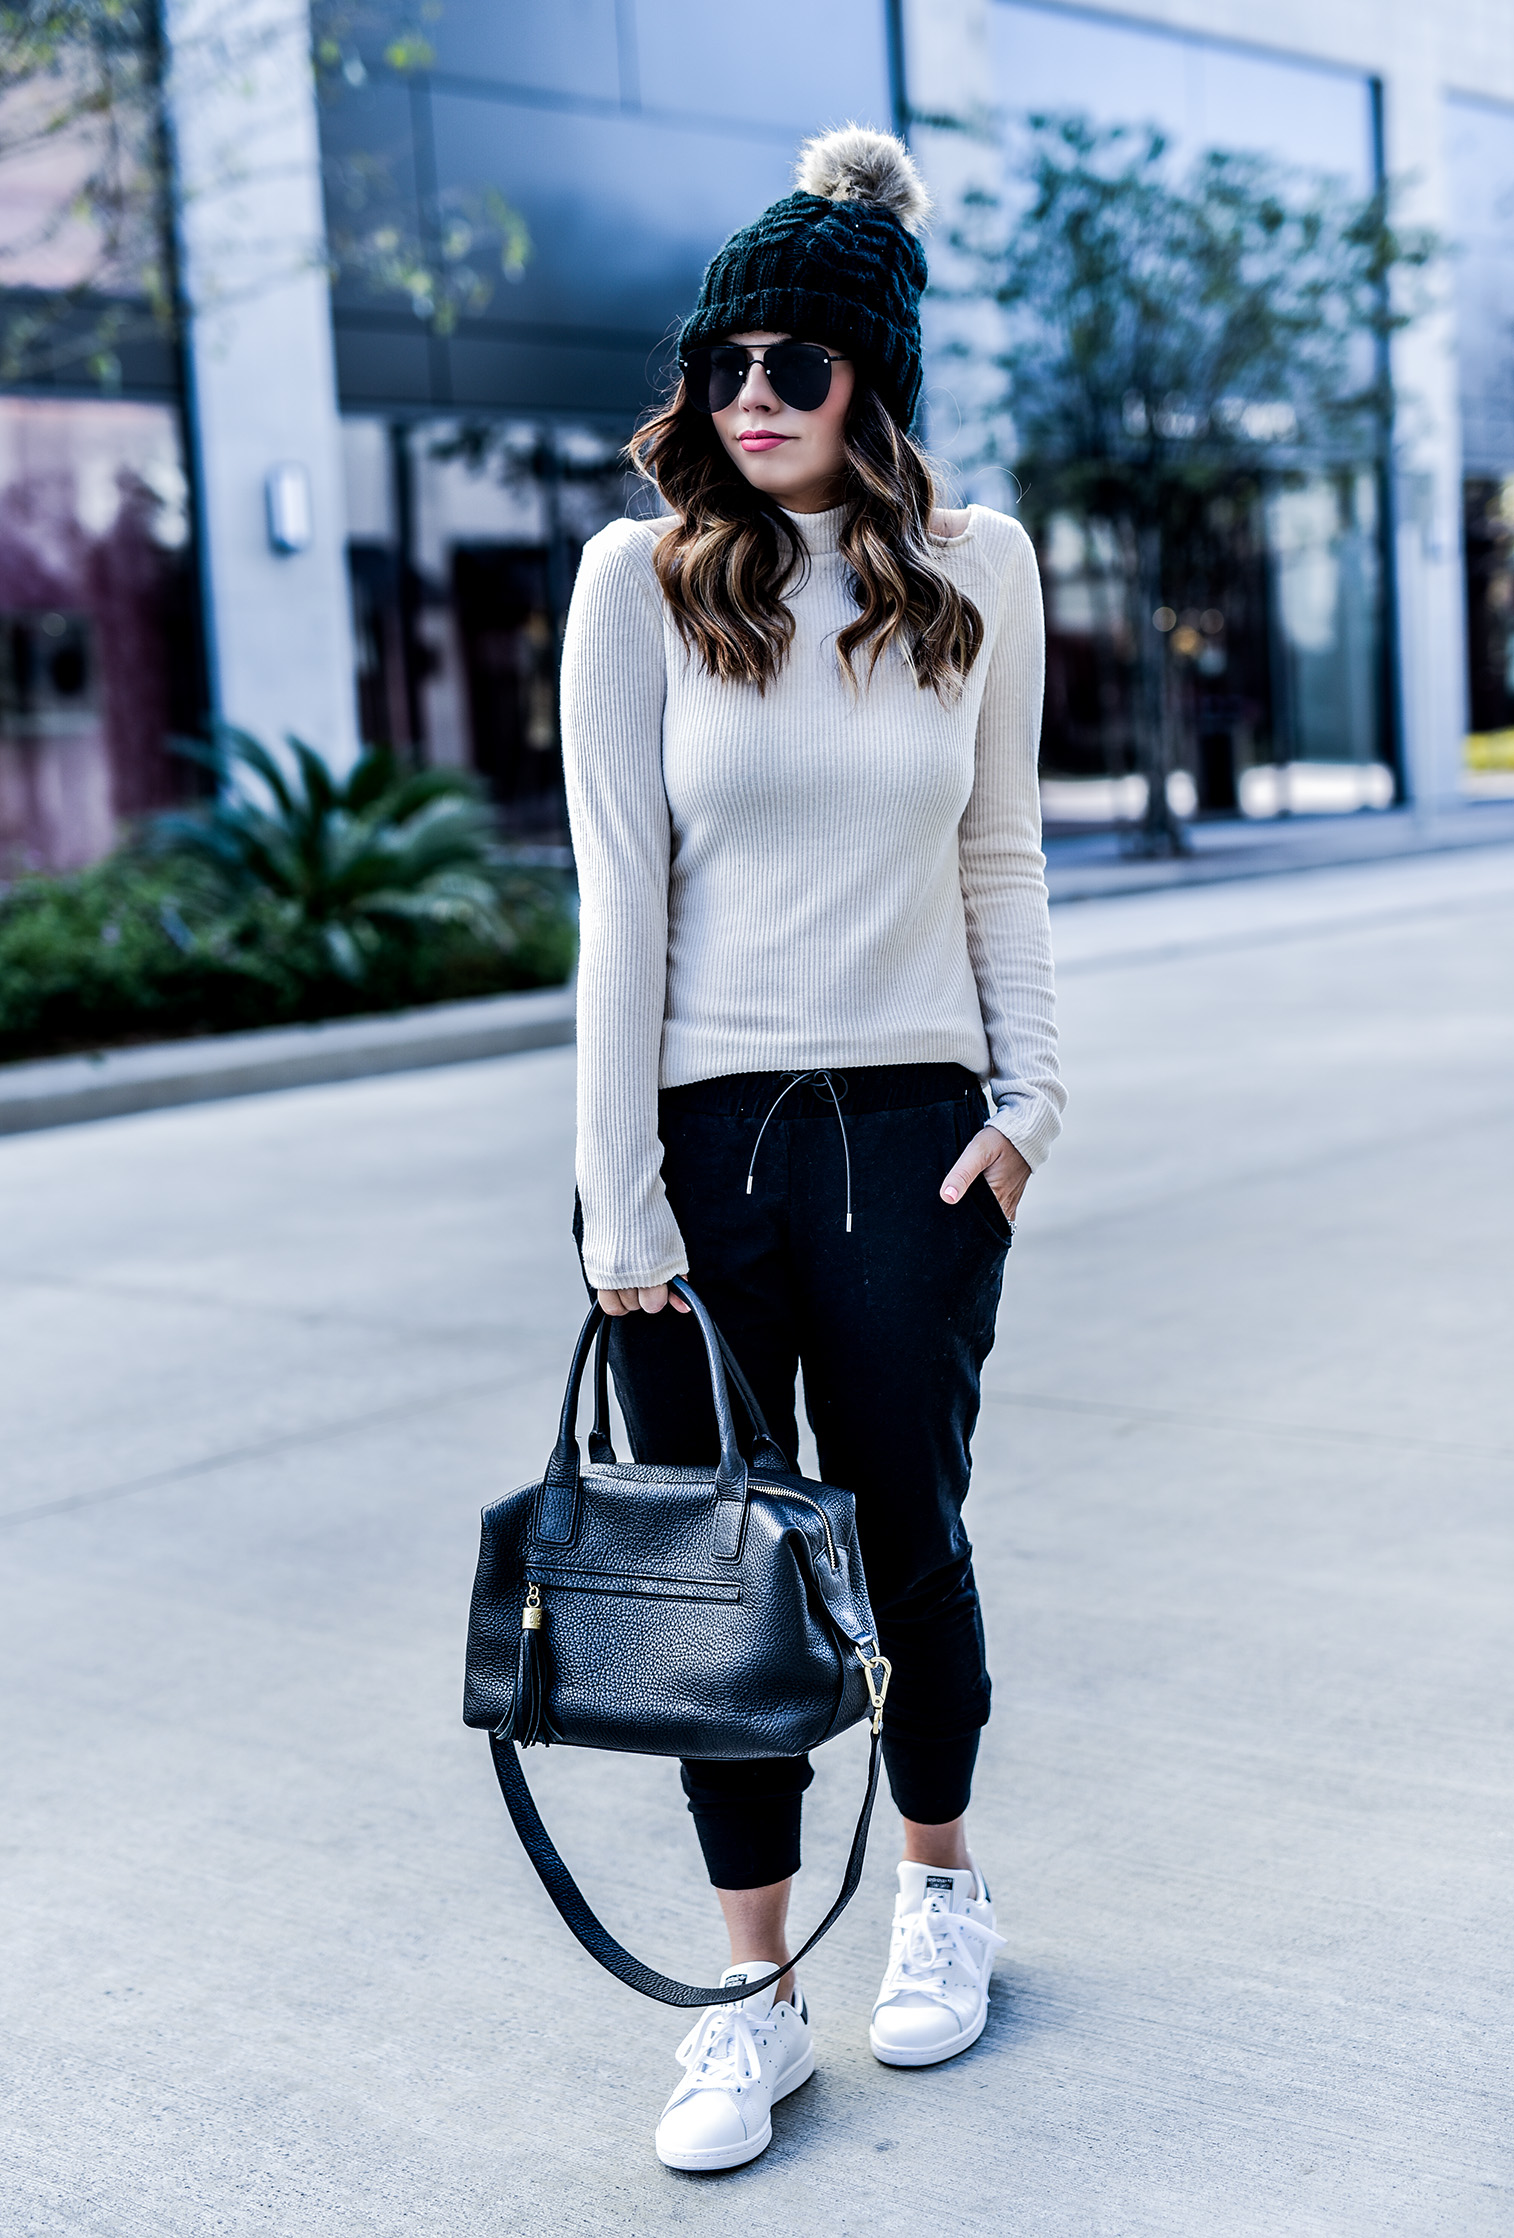 Fashion and lifestyle blogger Tiffany Jais wearing free people skinny black joggers, Stan Smith sneakers, a white cutout sweater by Revolve, and a faux fur pom pom beanie | streetstyle fashion, women's fashion